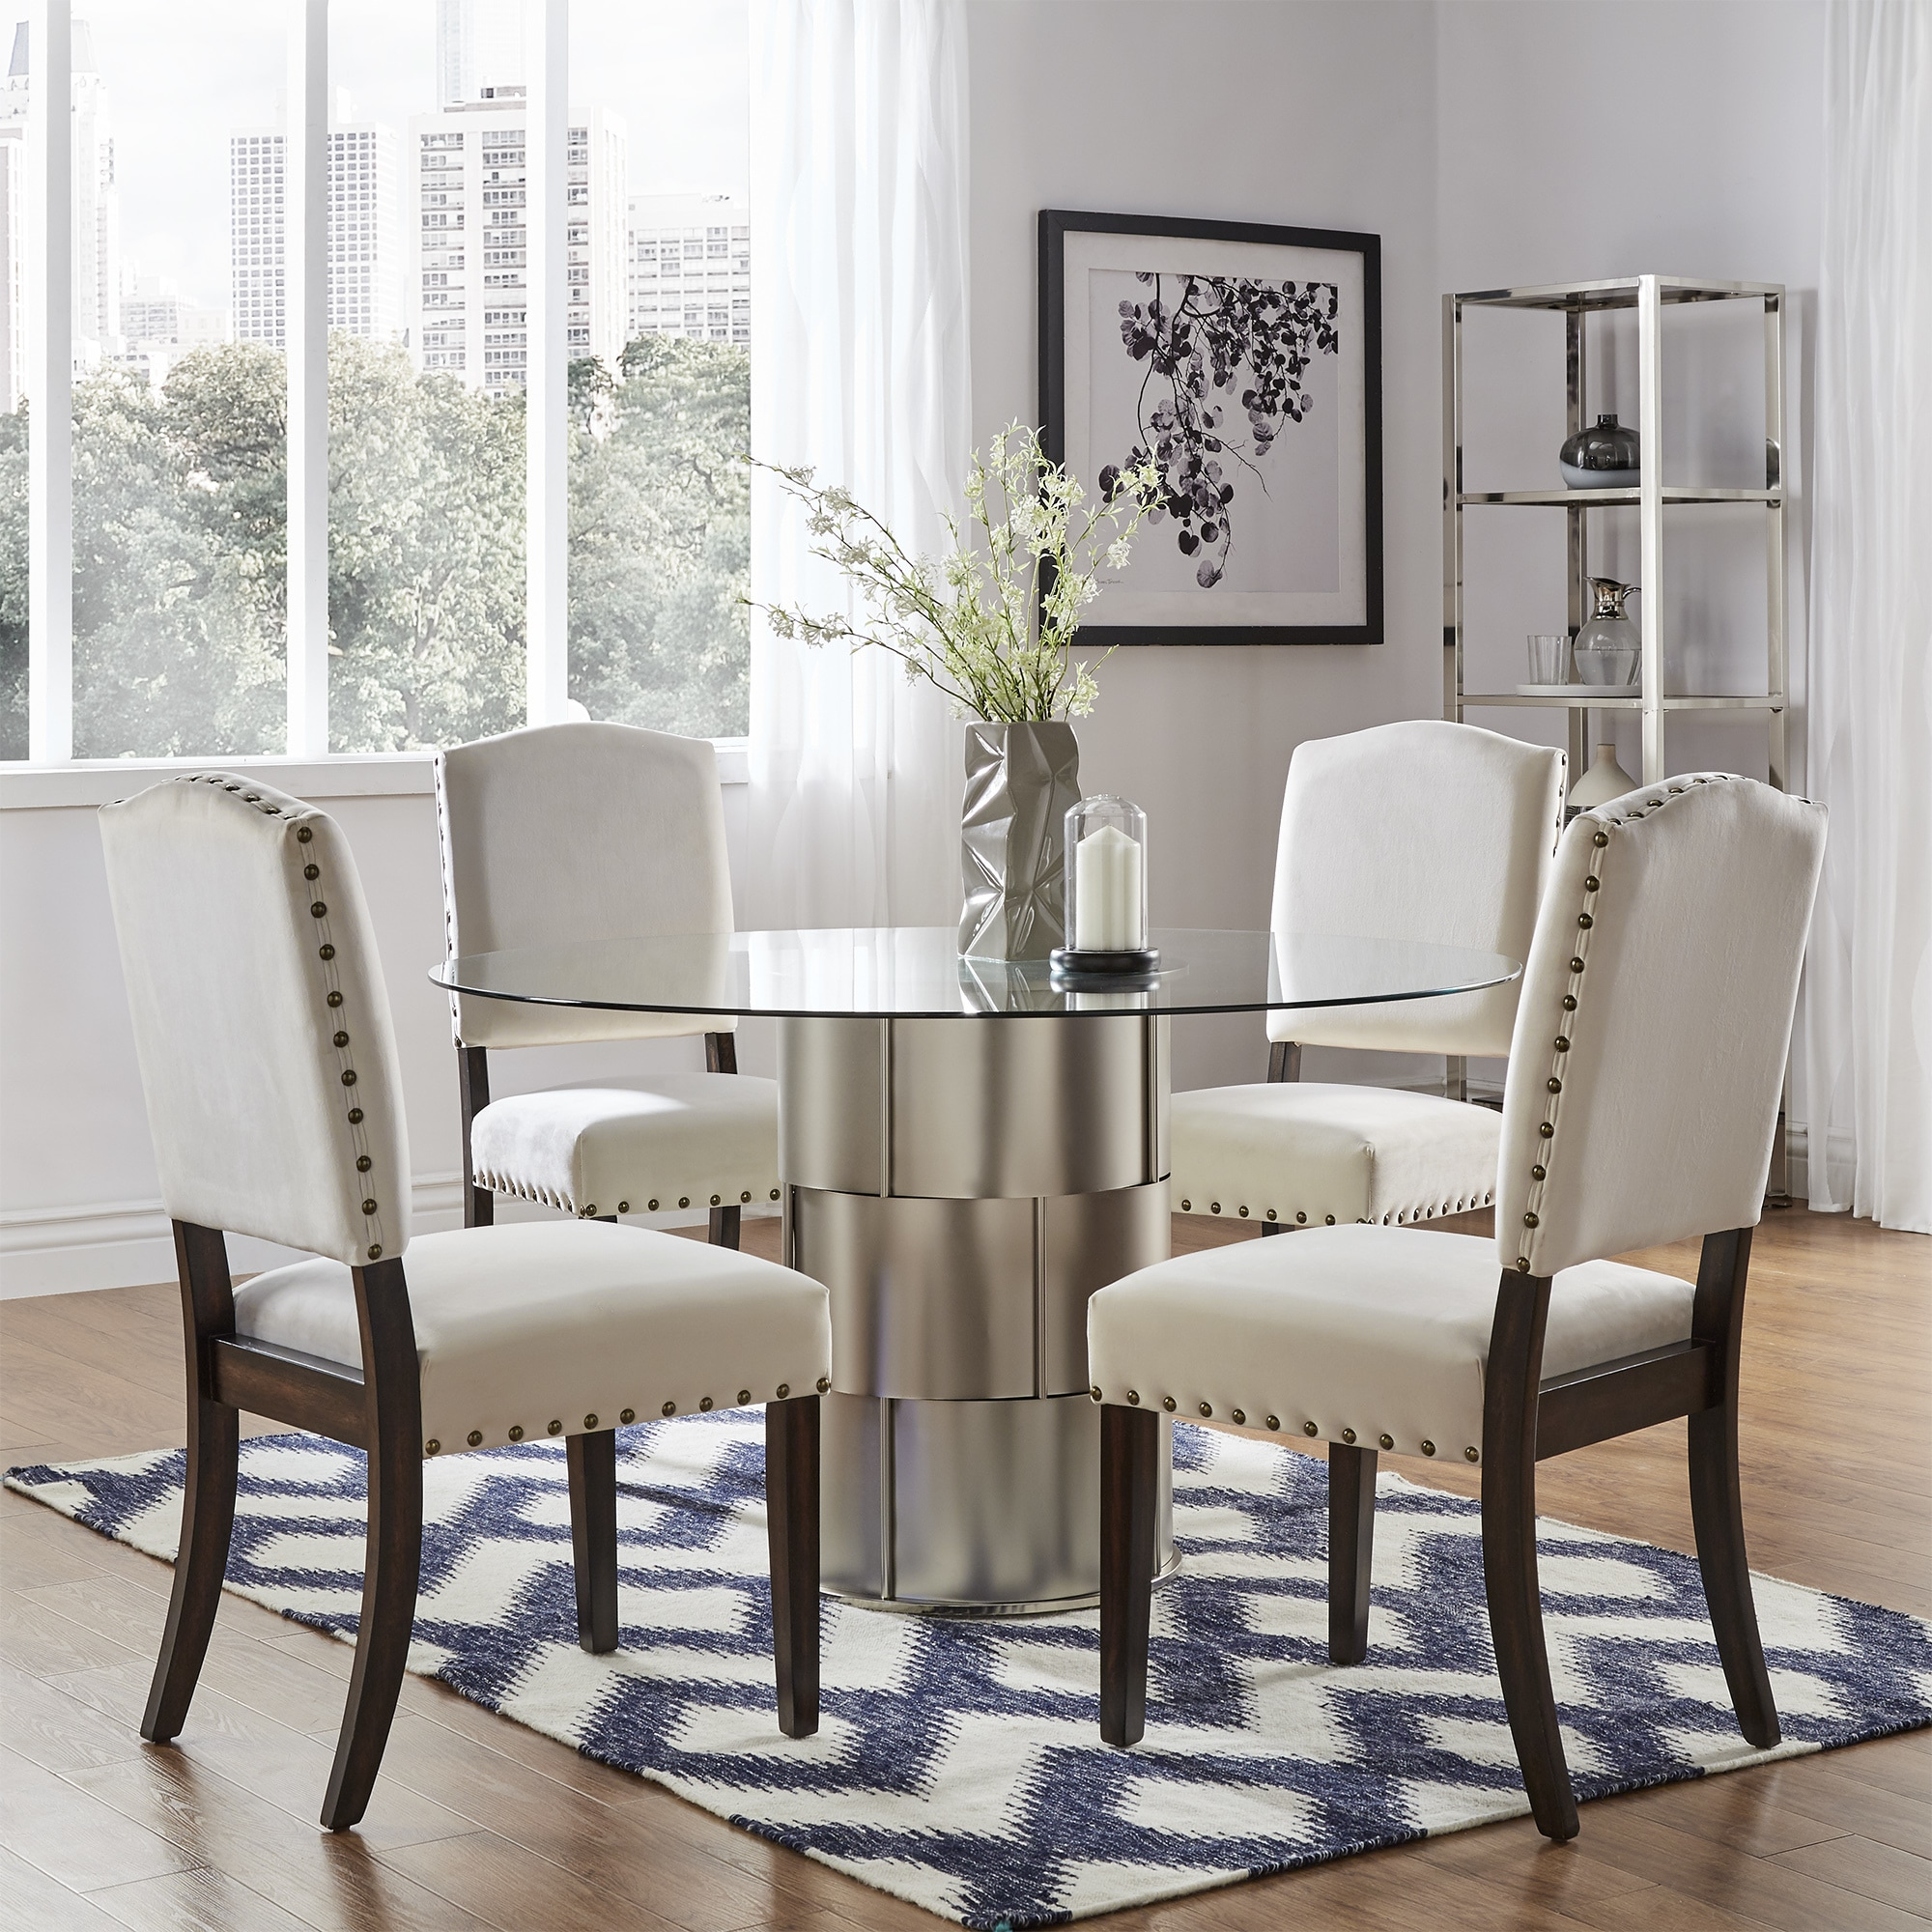 Benchwright II Velvet Nailhead Dining Chairs (Set of 2) by iNSPIRE Q Bold -  Free Shipping Today - Overstock.com - 22670937